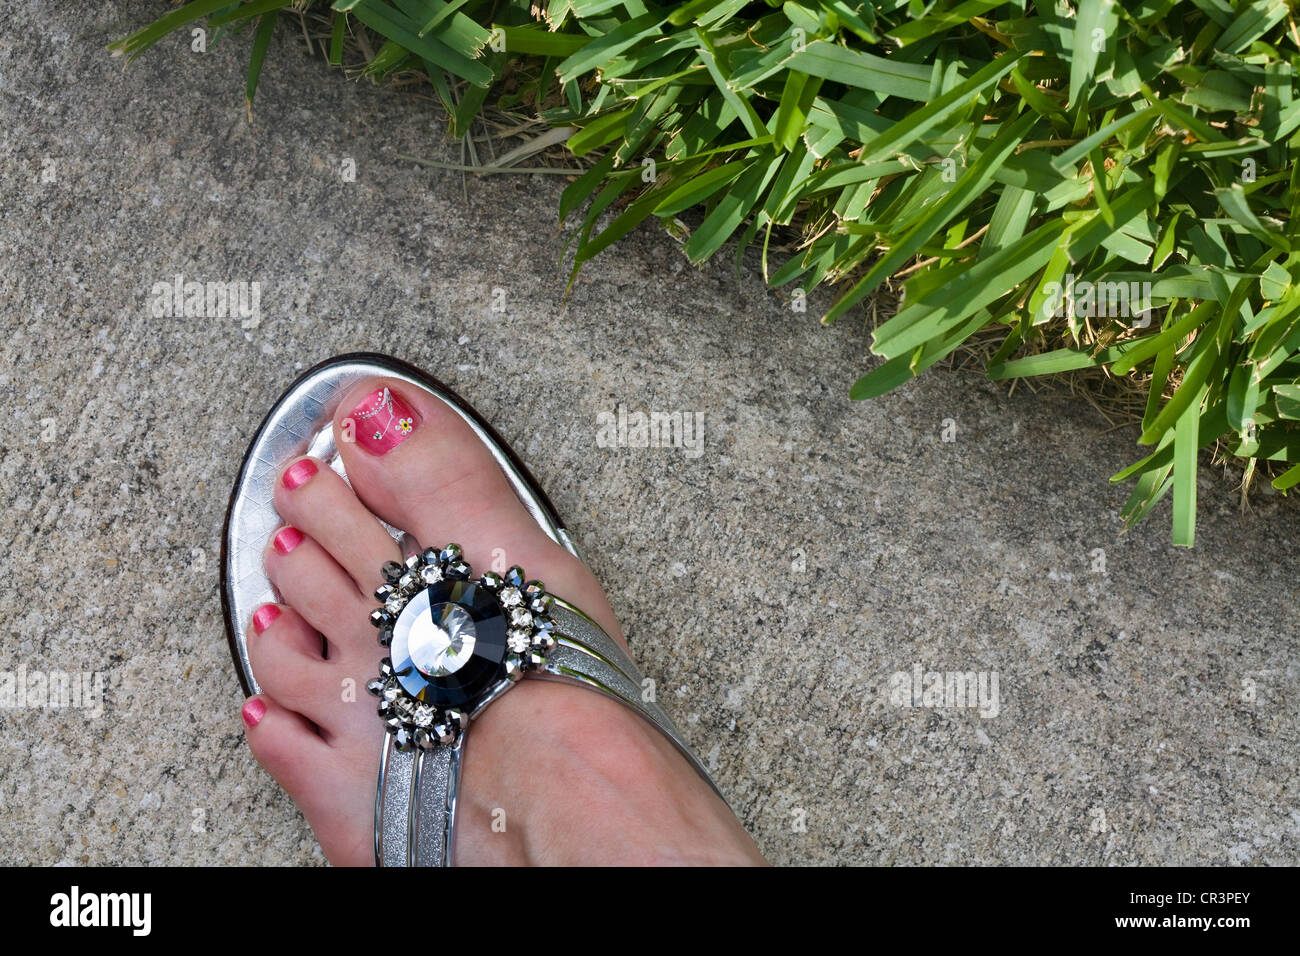 Flip Flop Sandals On Grass Stockfotos & Flip Flop Sandals On Grass ...